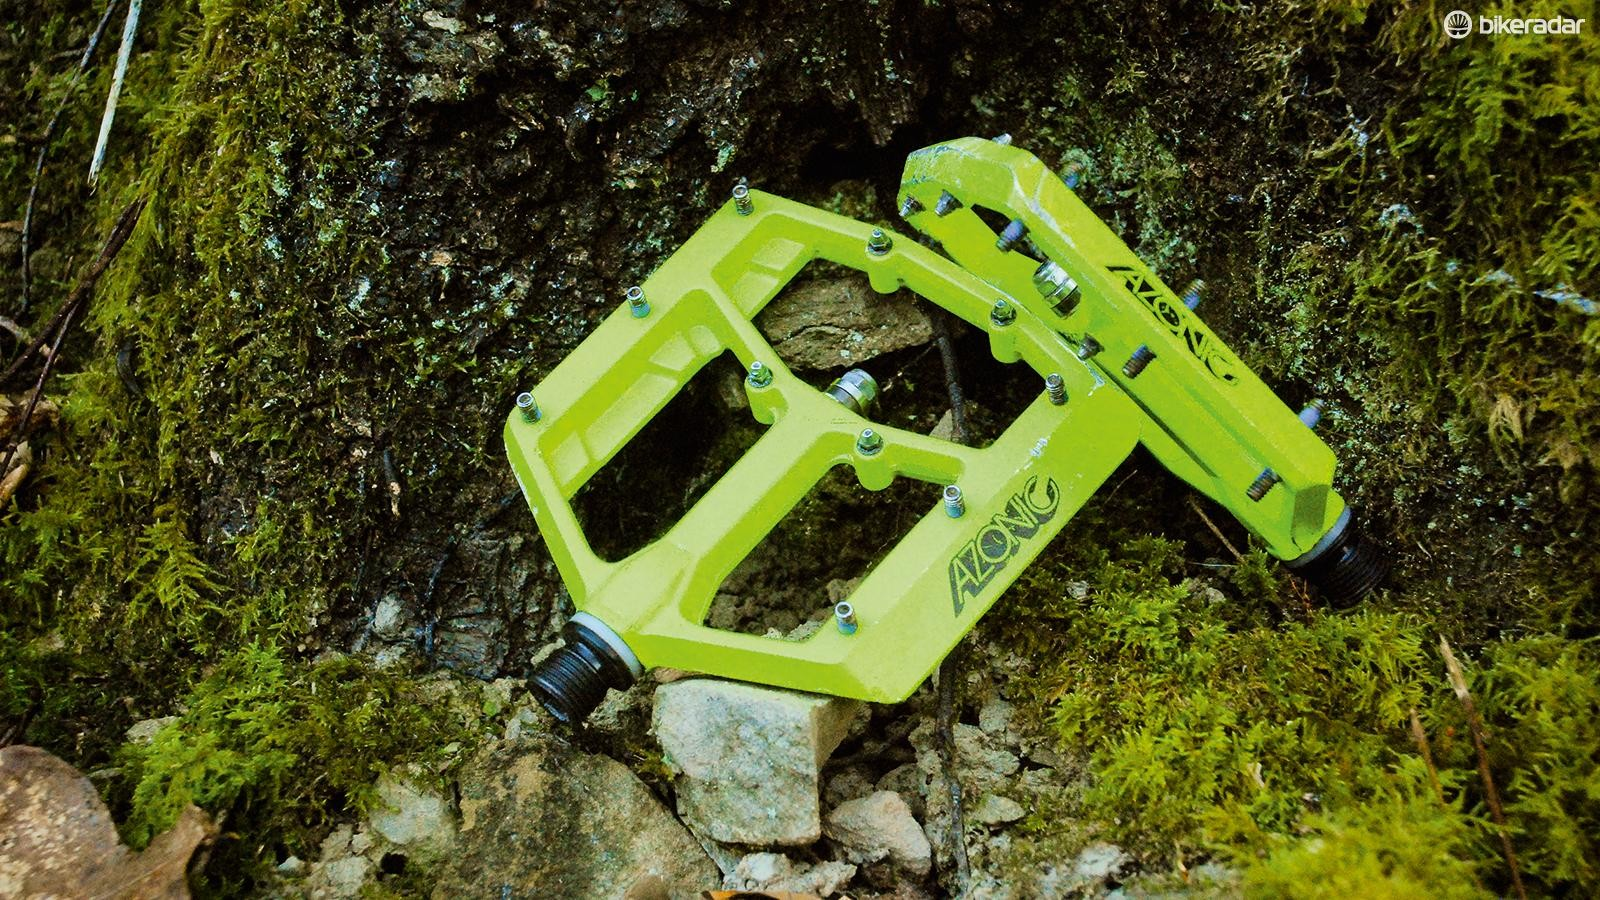 Azonic Bigfoot MTB pedals